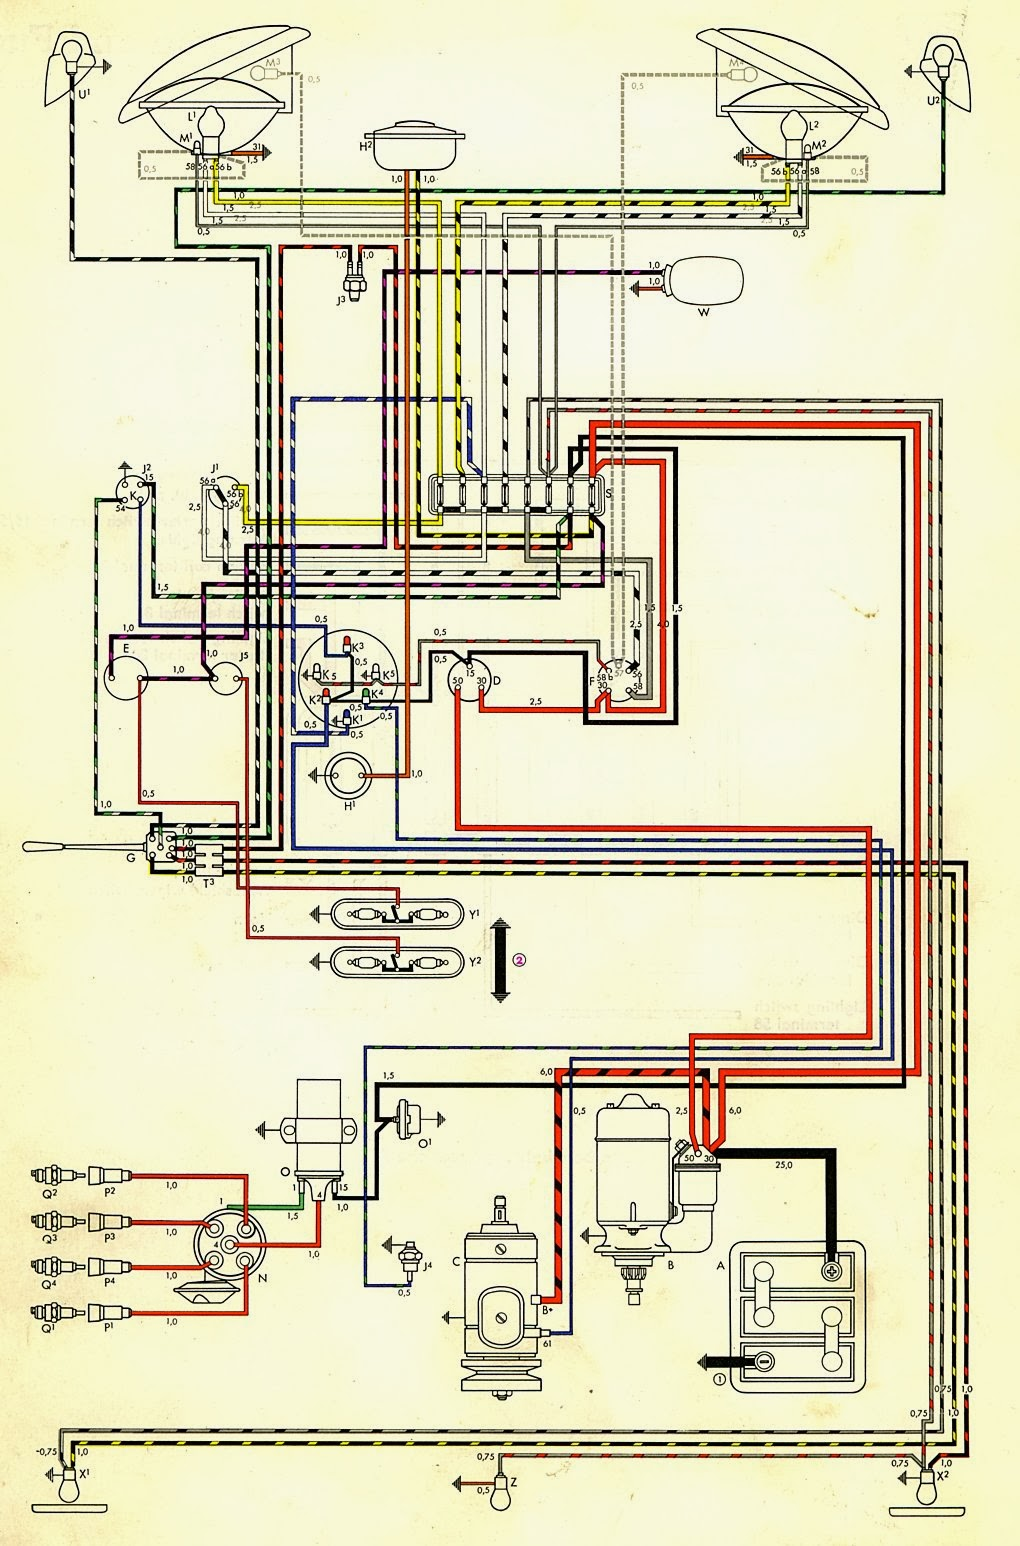 1969 vw type 3 wiring diagram vw r32 wiring diagram wiring